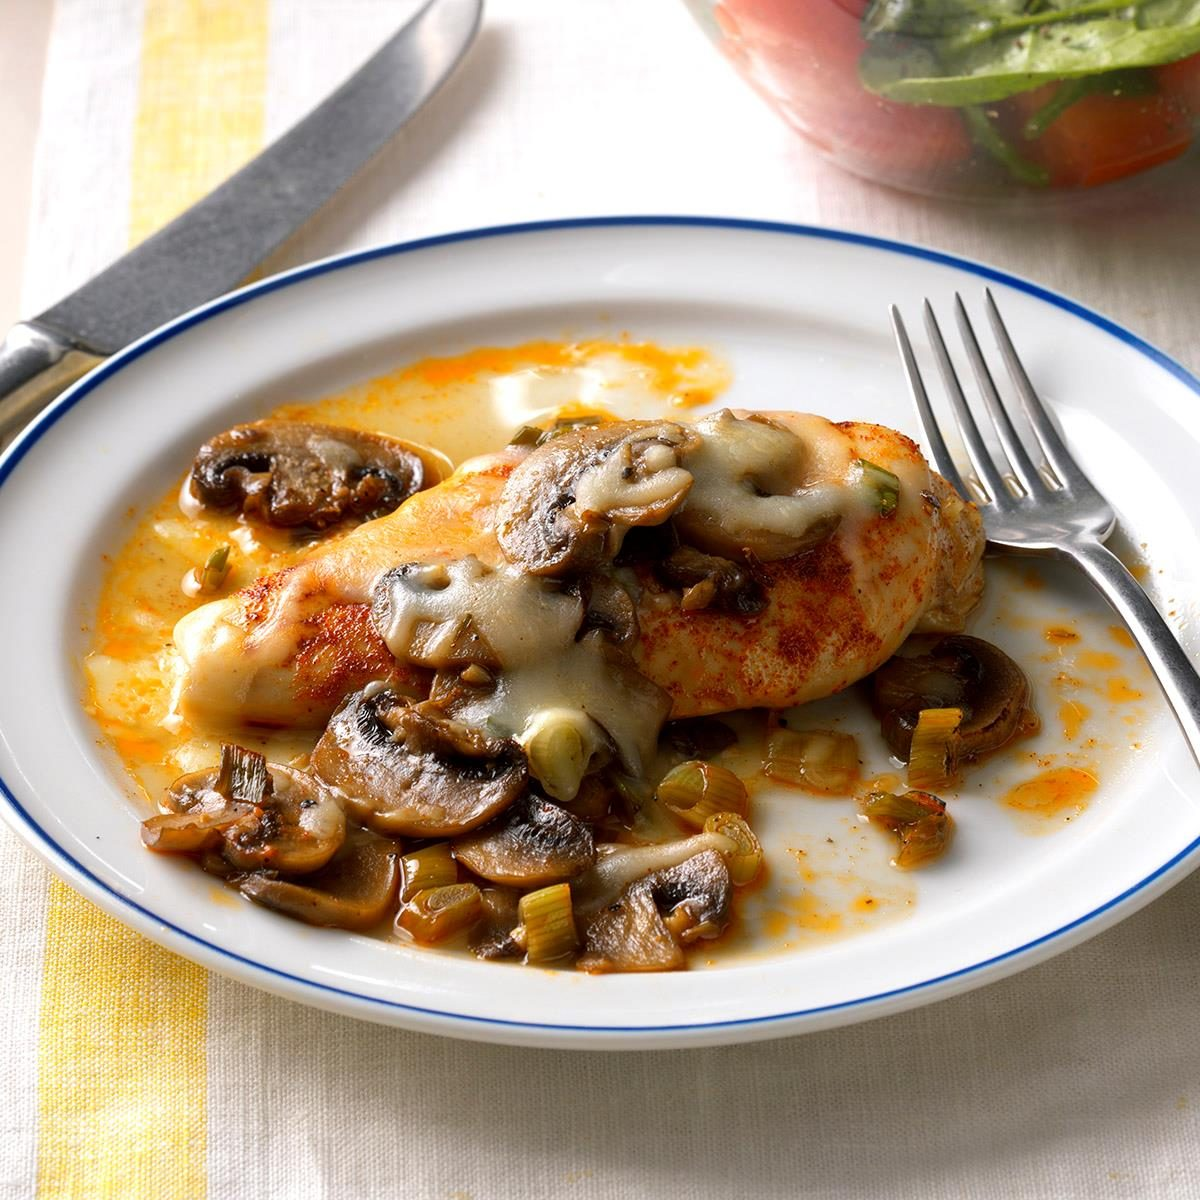 Tuesday: Baked Chicken and Mushrooms